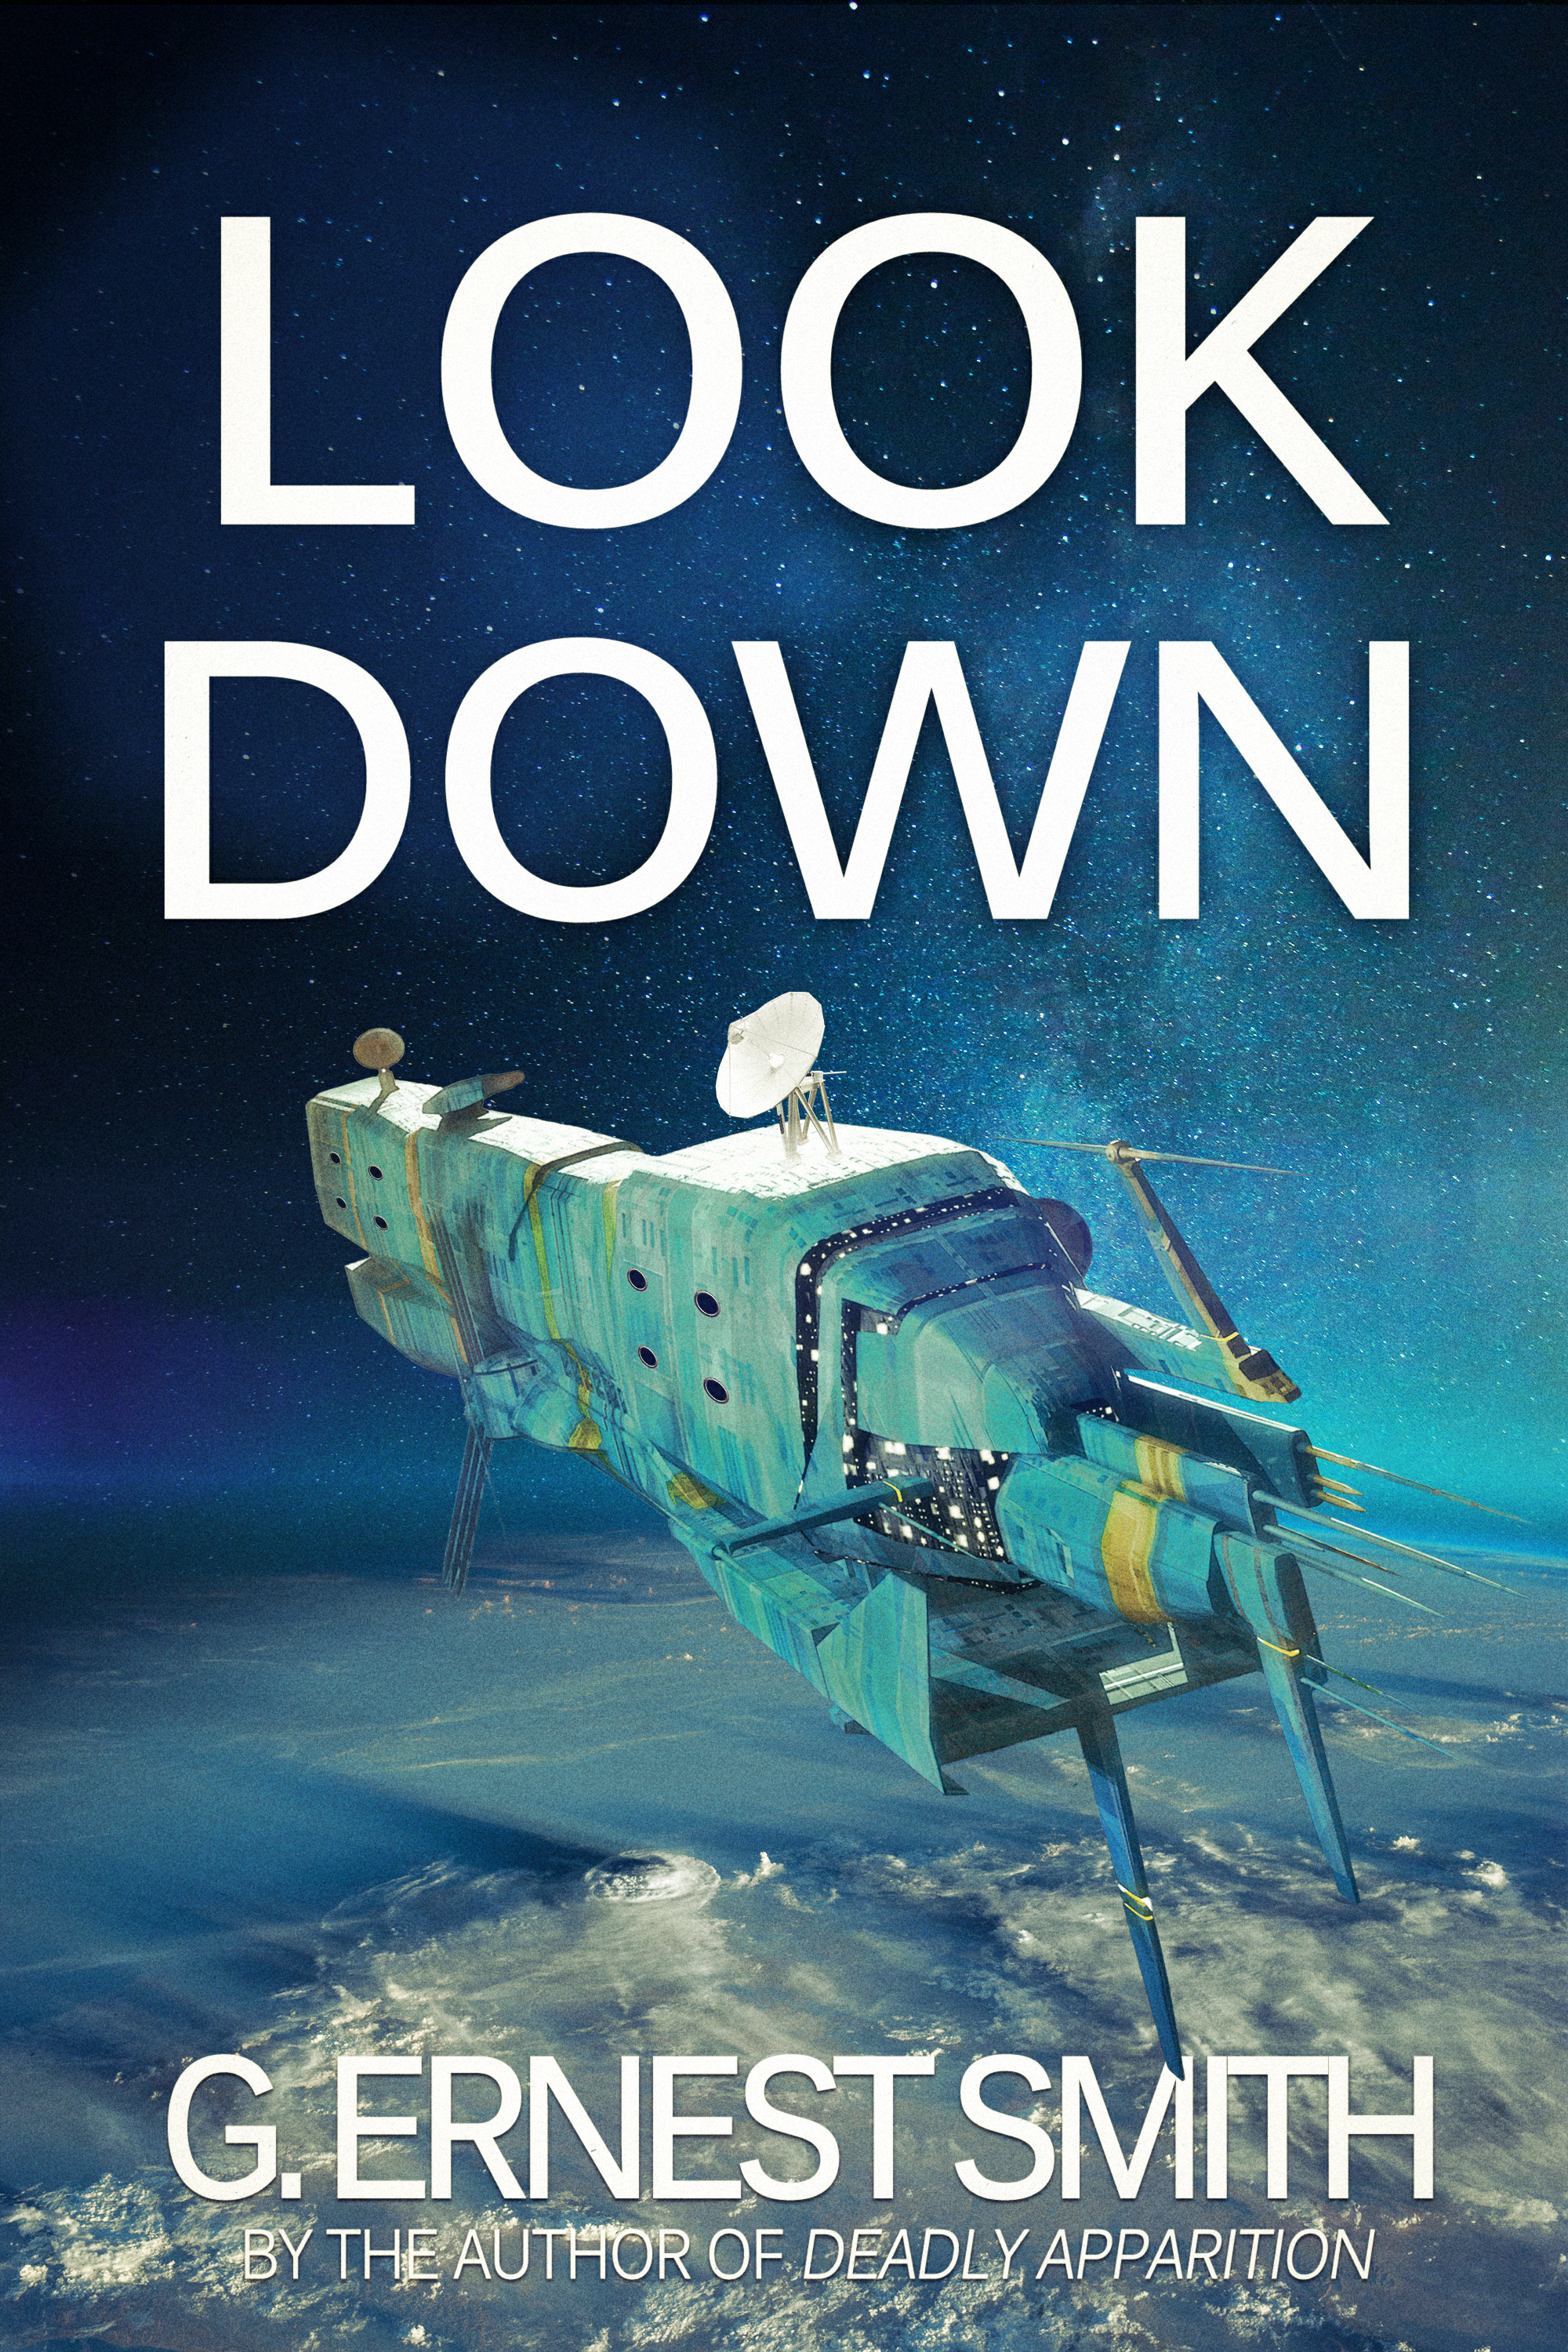 Look Down, by G. Ernest Smith